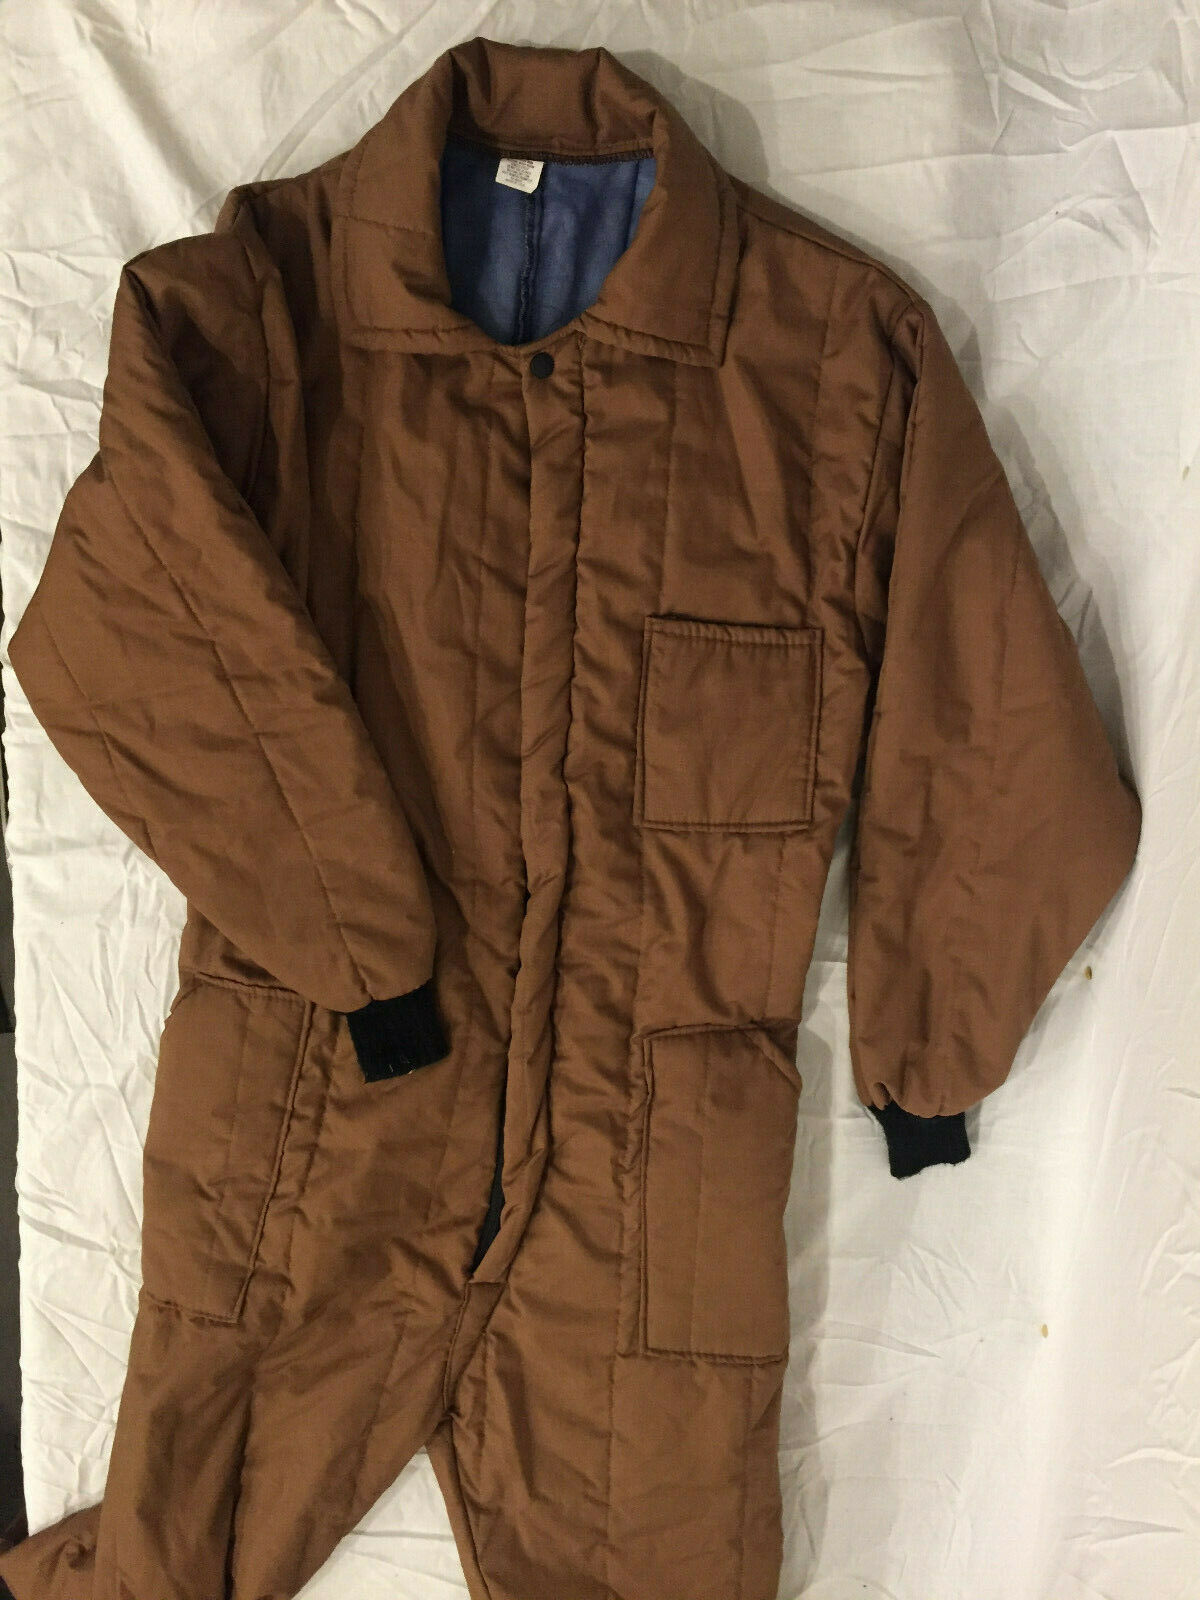 NEW WITHOUT TAGS SLEEPING BAG JUMPSUIT BROWN DACRON 808 ONE SIZE FITS MOST